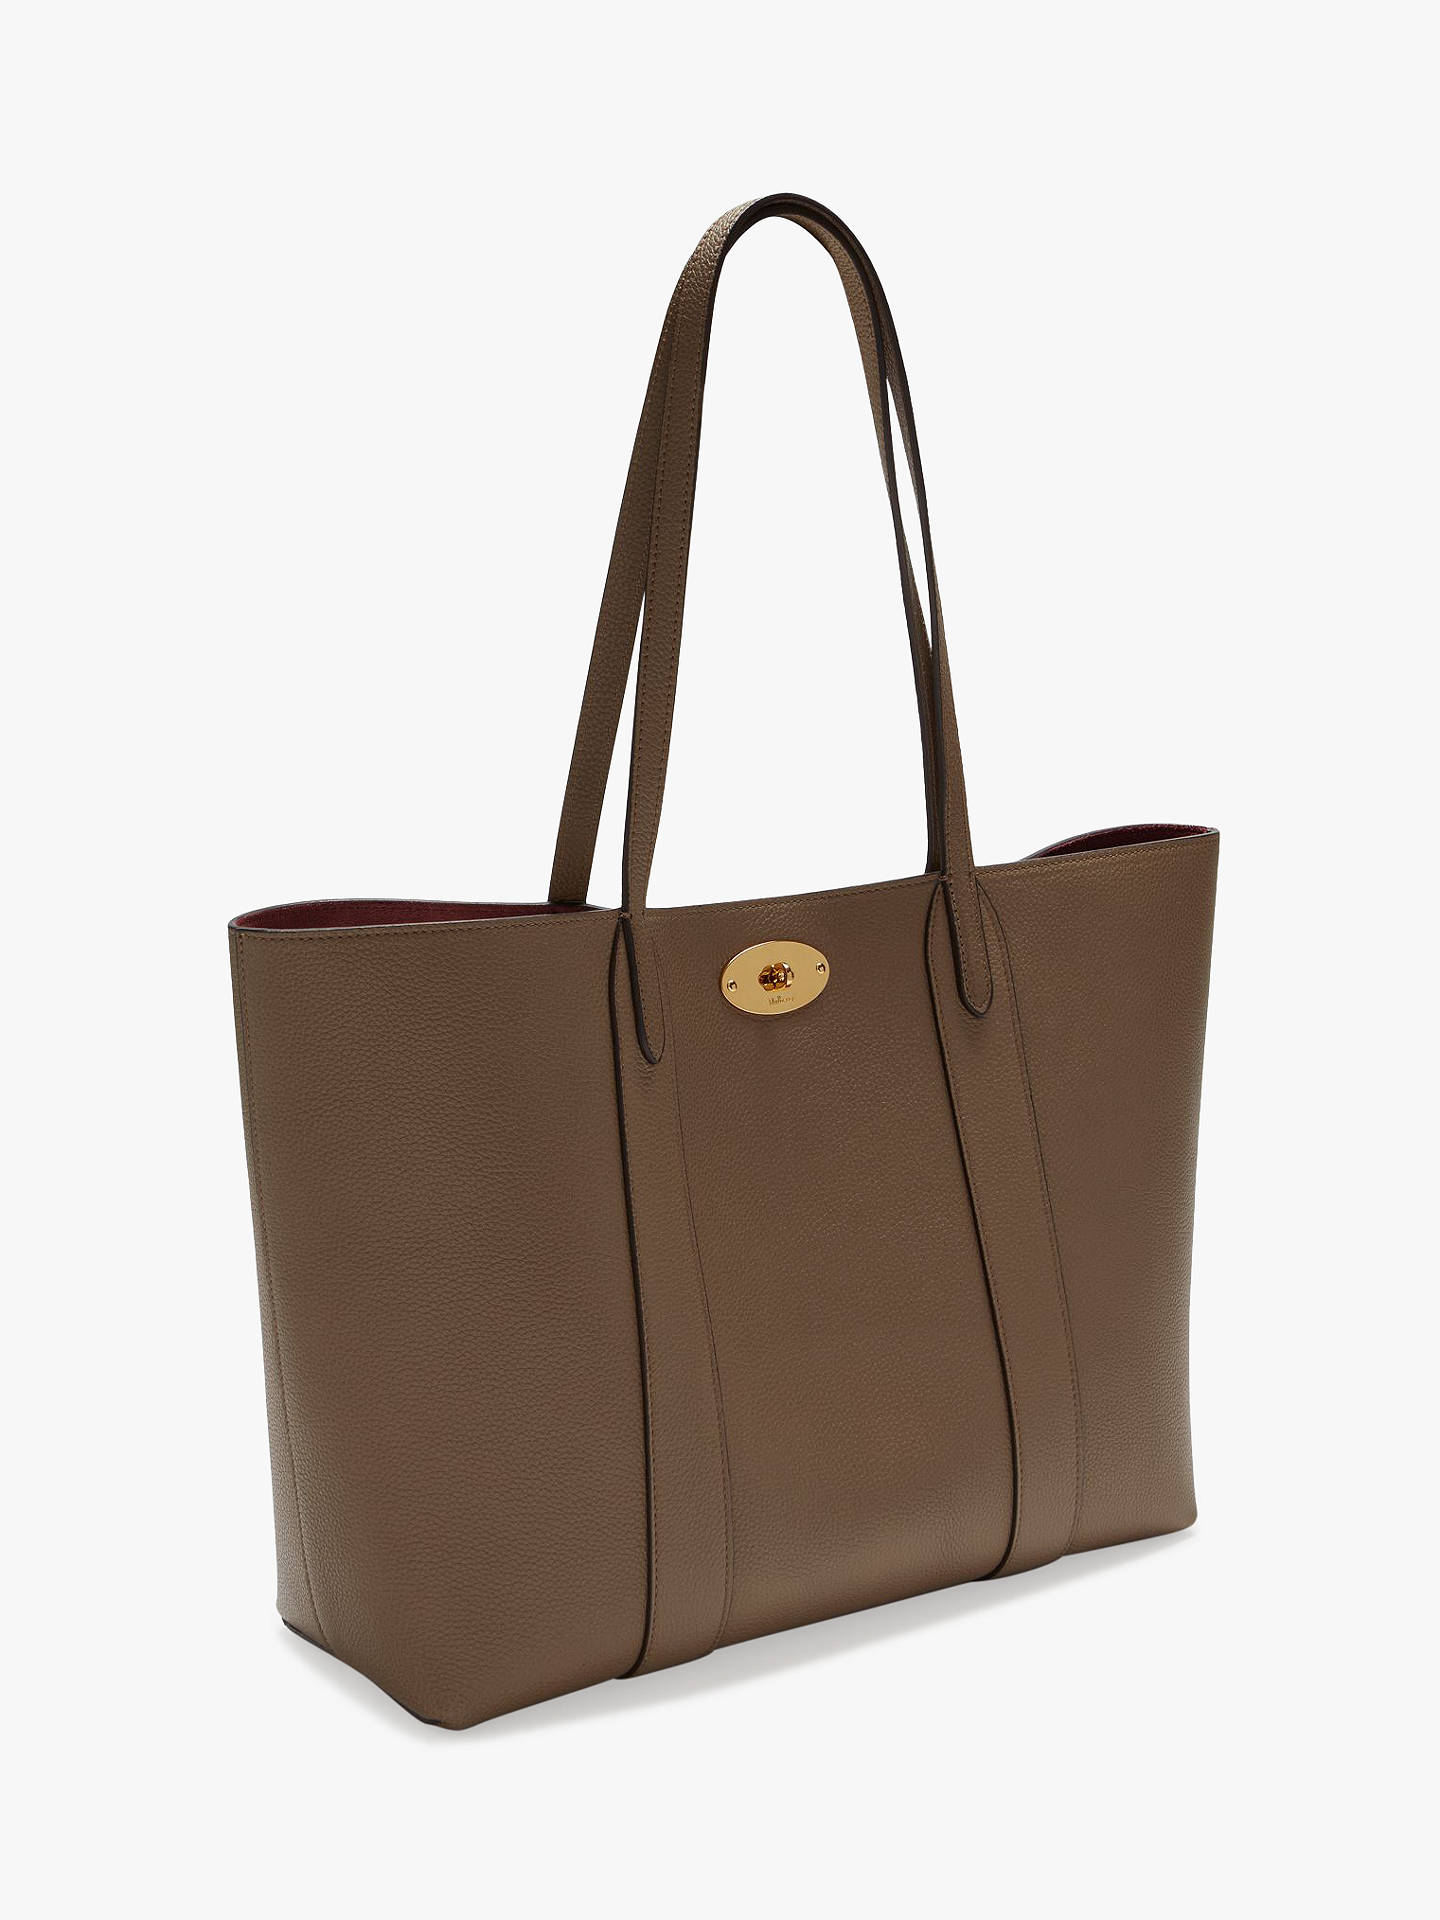 016bebaf2ac8d Buy Mulberry Bayswater Small Classic Grain Leather Tote Bag, Clay/Oxblood  Online at johnlewis ...